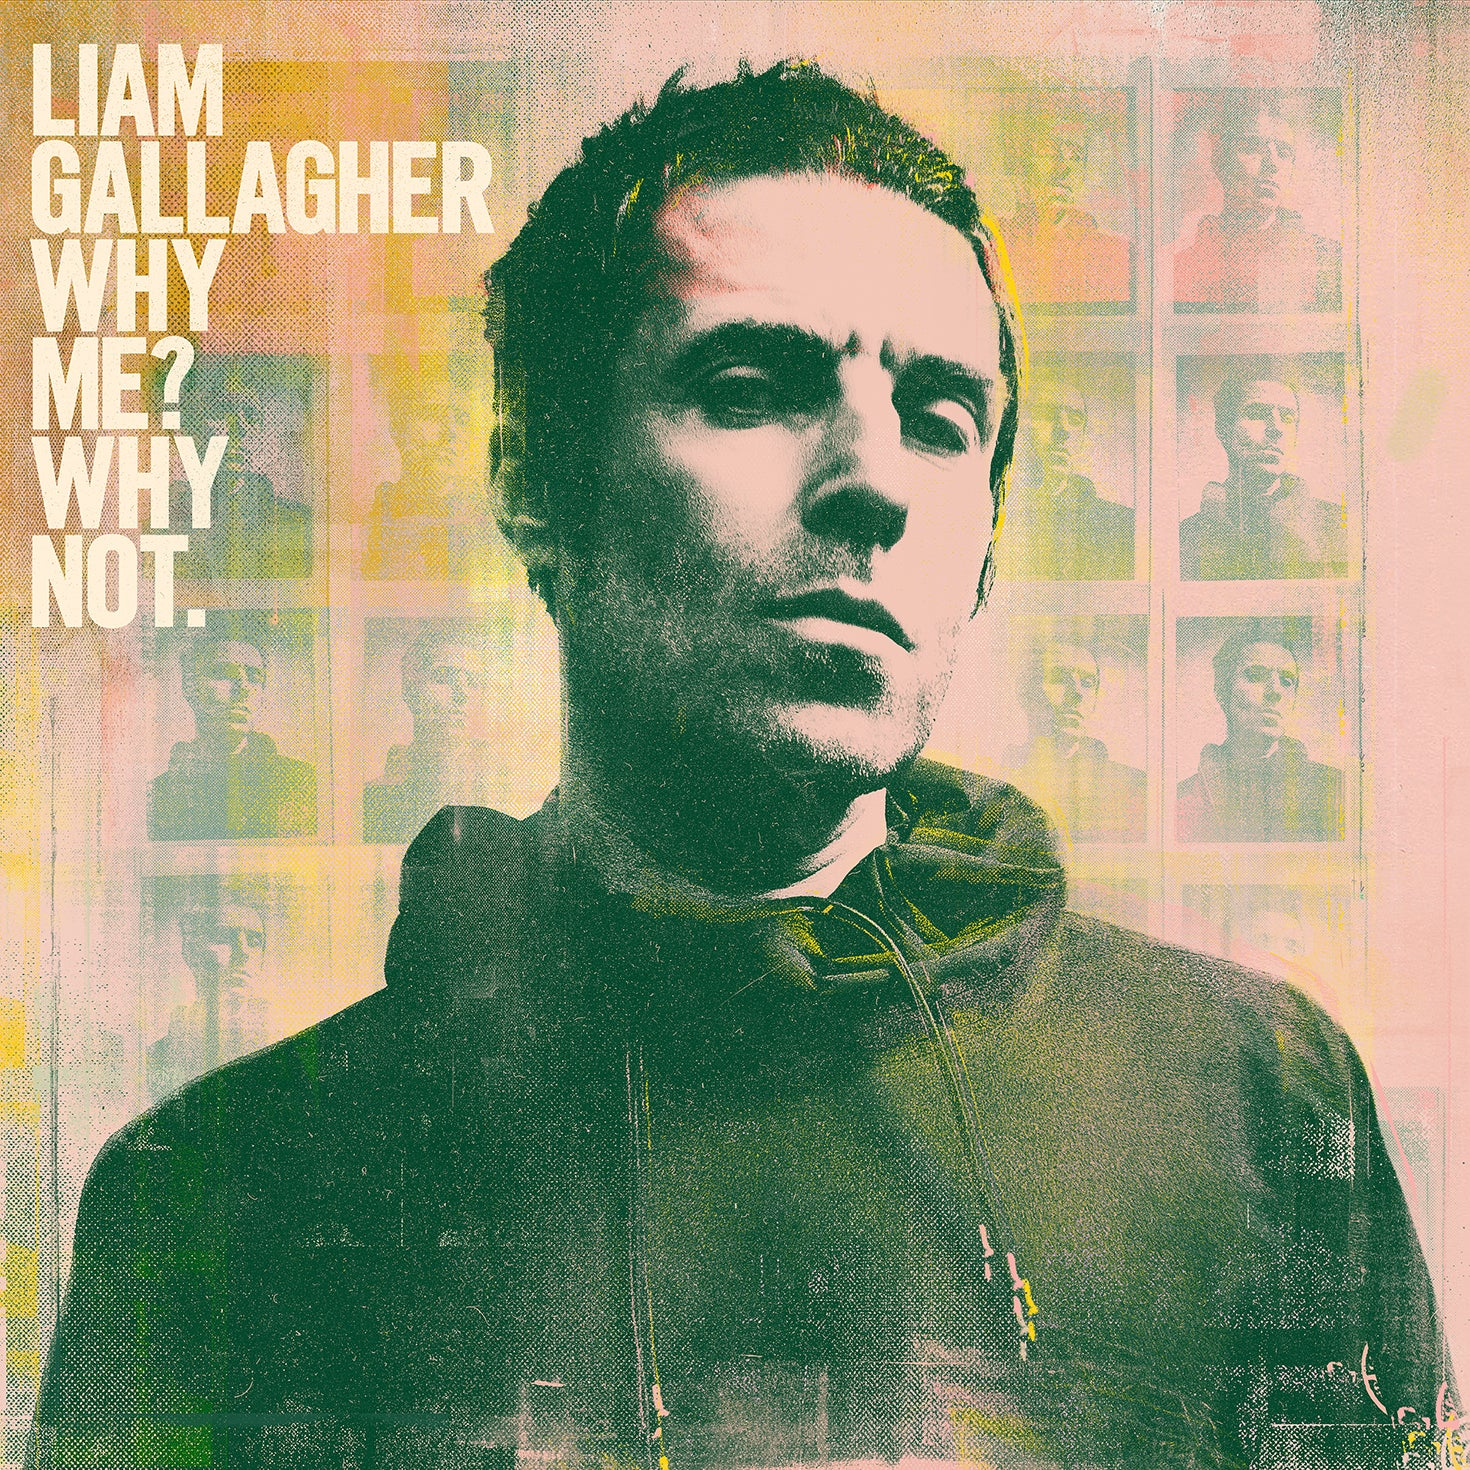 Why Me? Why Not.: - Liam Gallagher [VINYL]